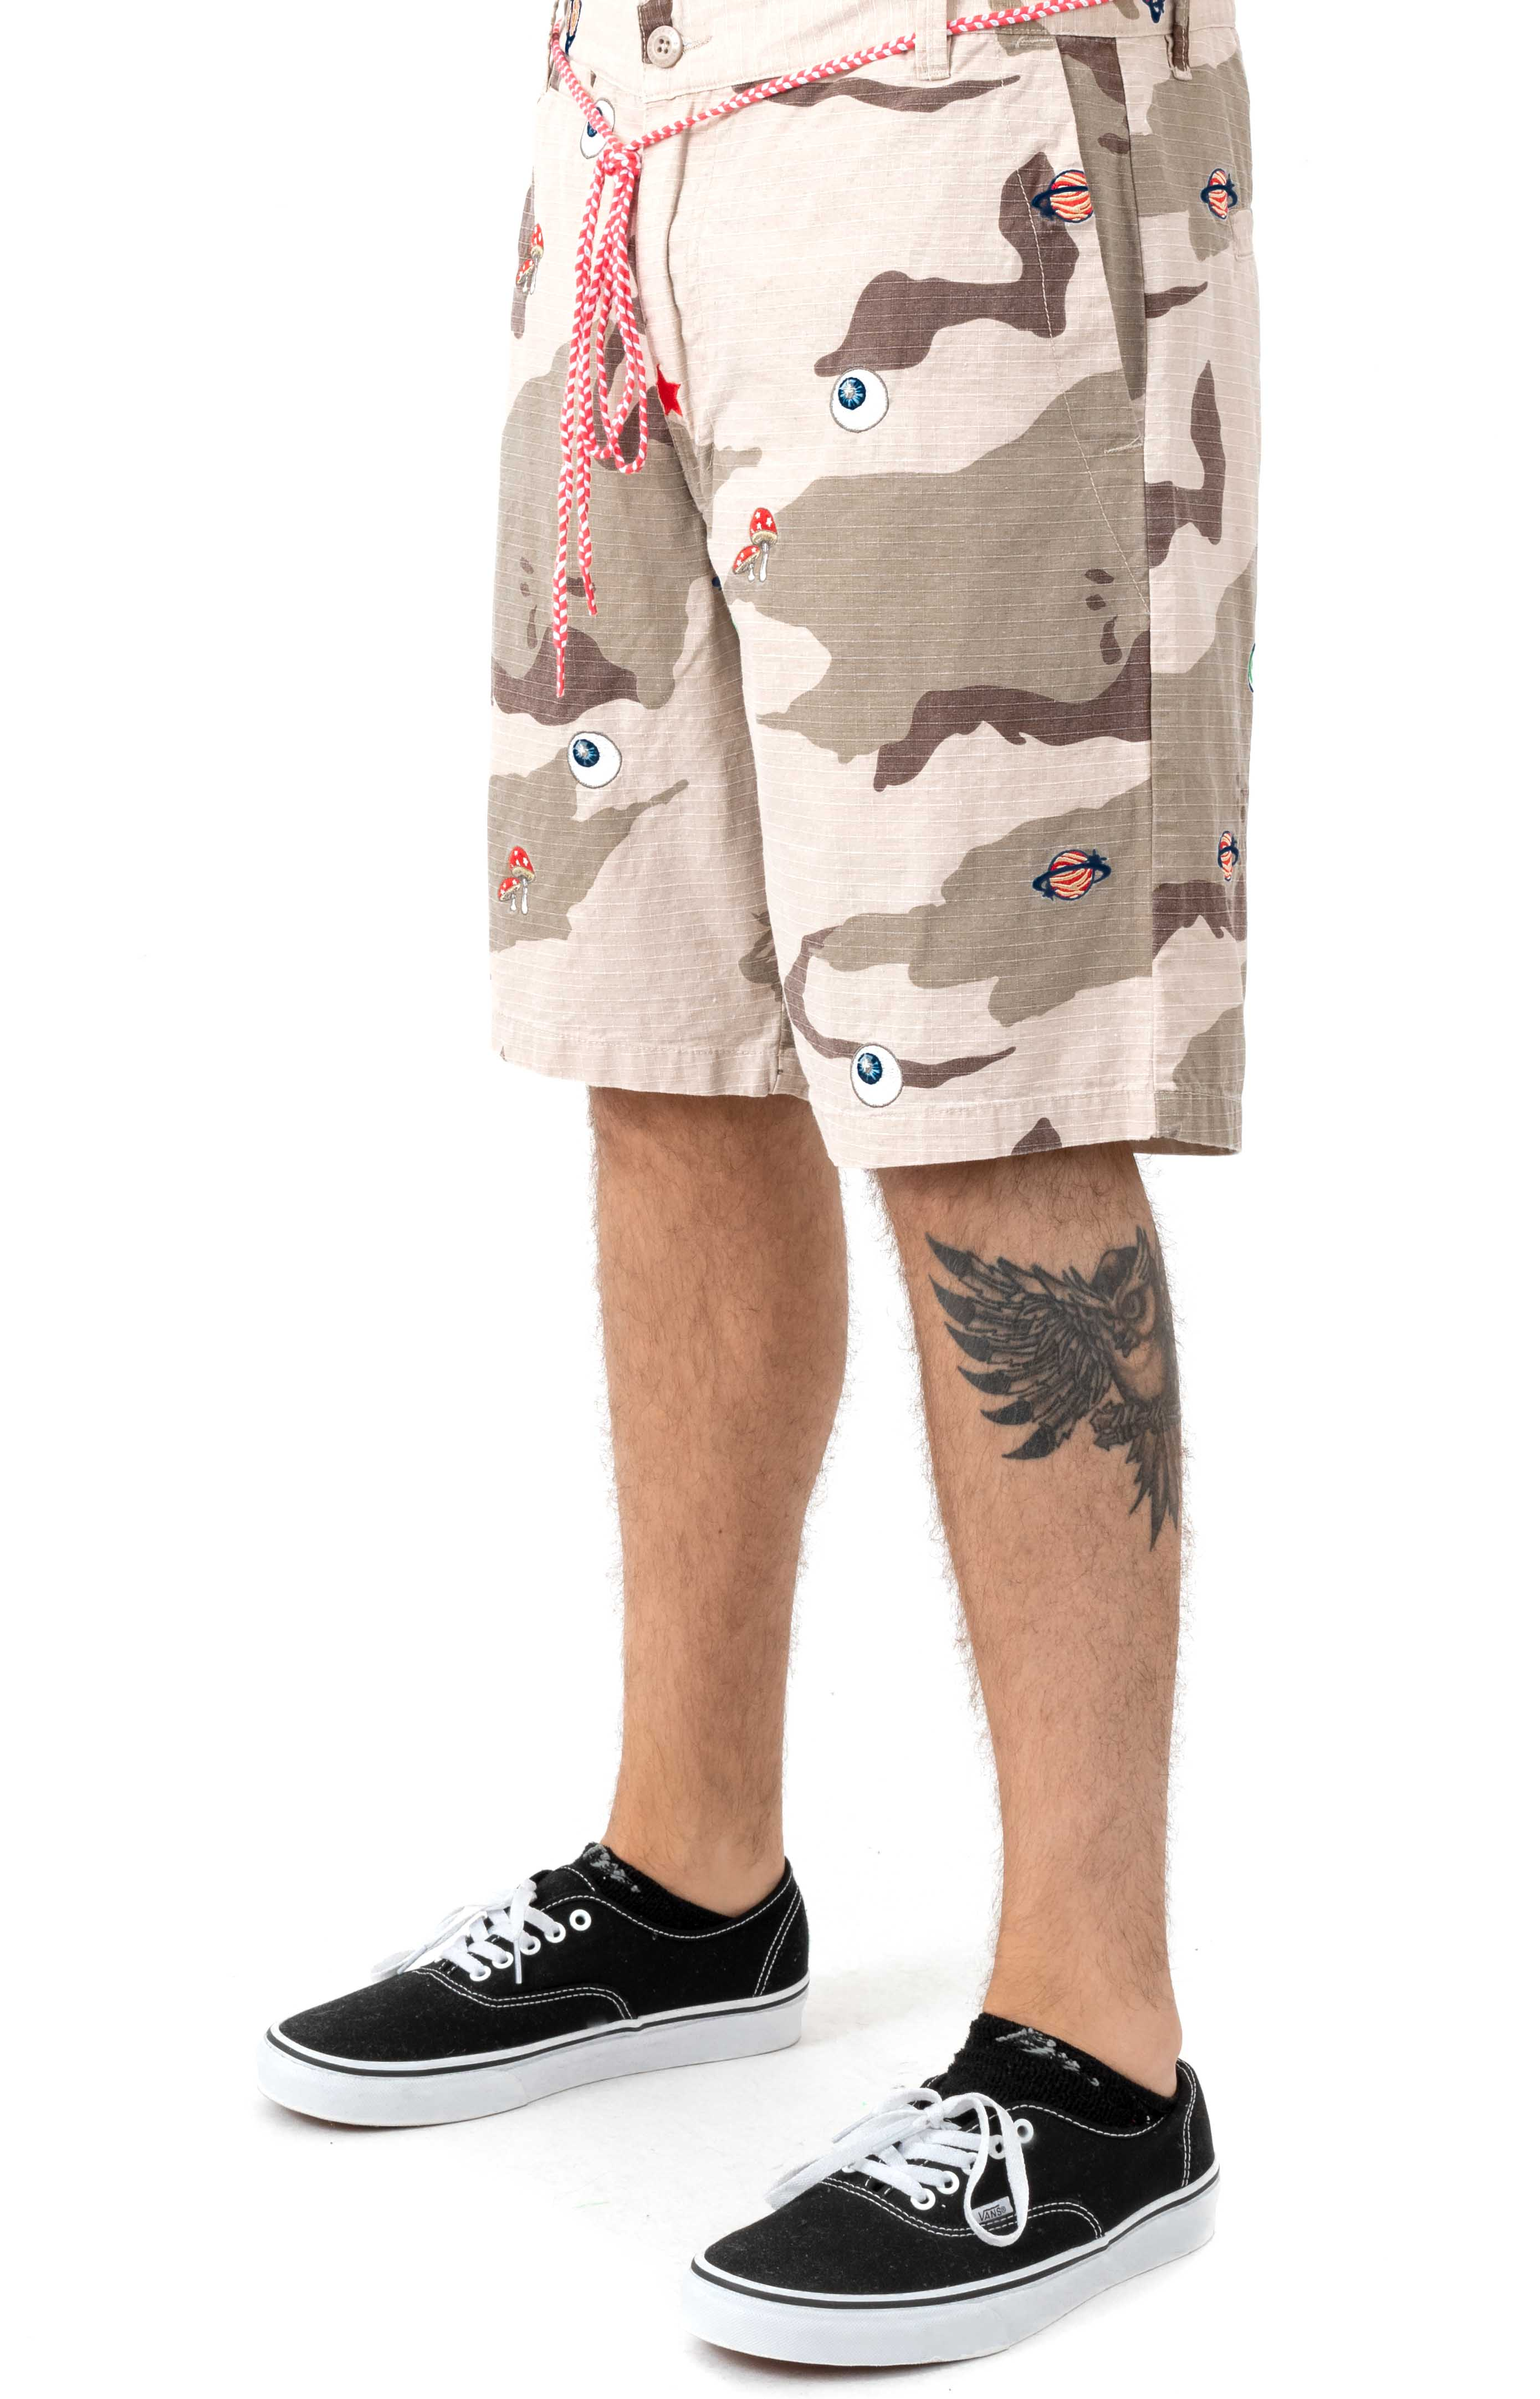 BB Camo Short - Smoke Grey